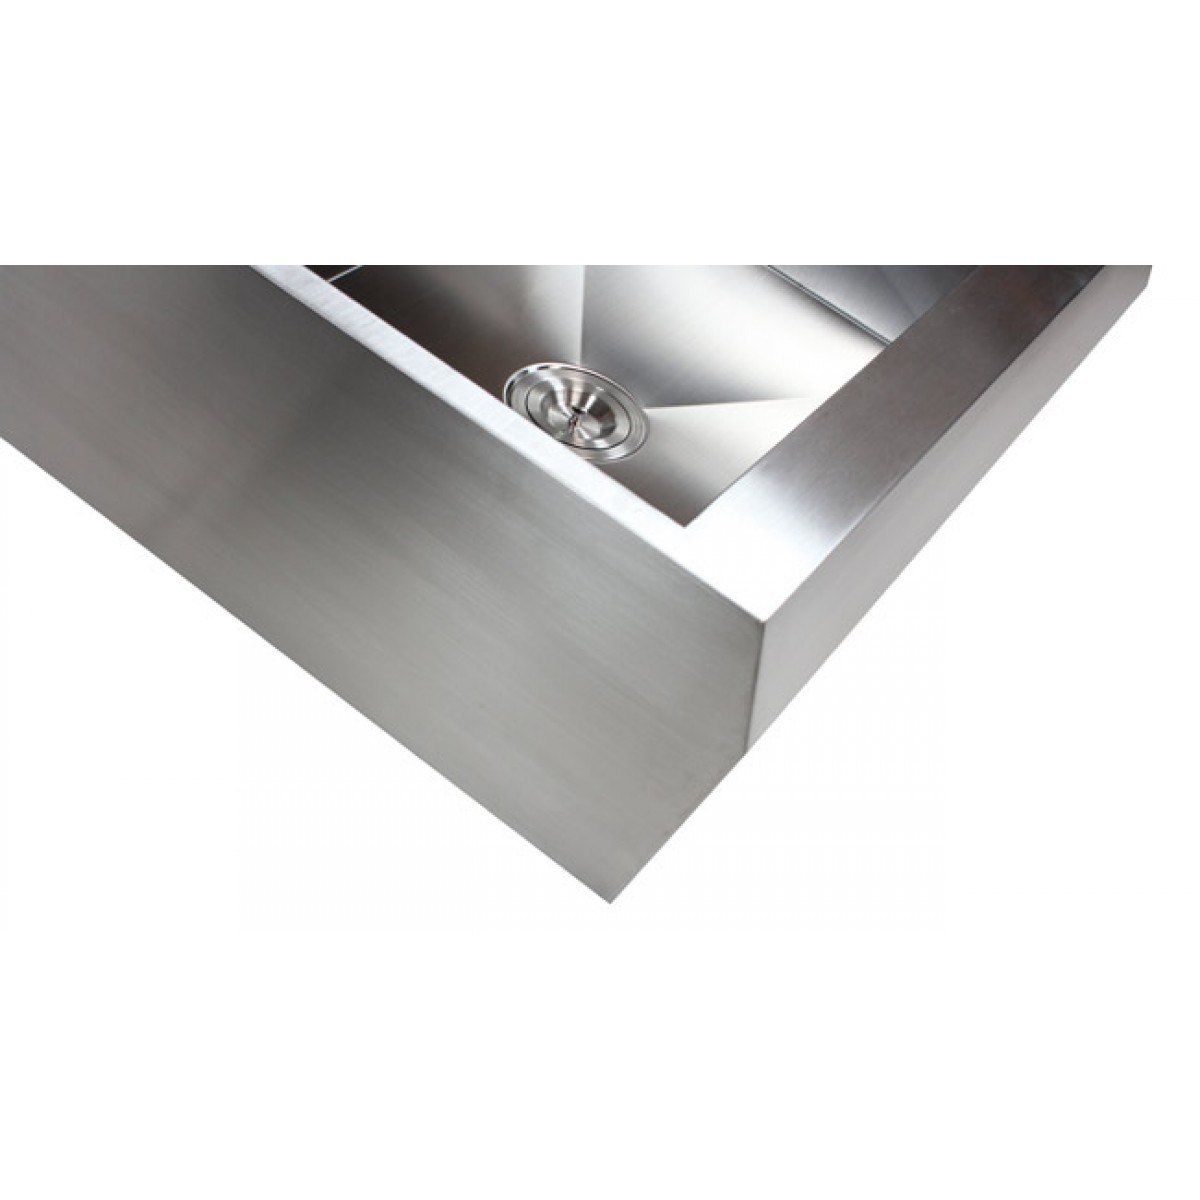 Angled Sink : ... 50 Double Bowl Zero Radius Well Angled Design Farm Apron Kitchen Sink